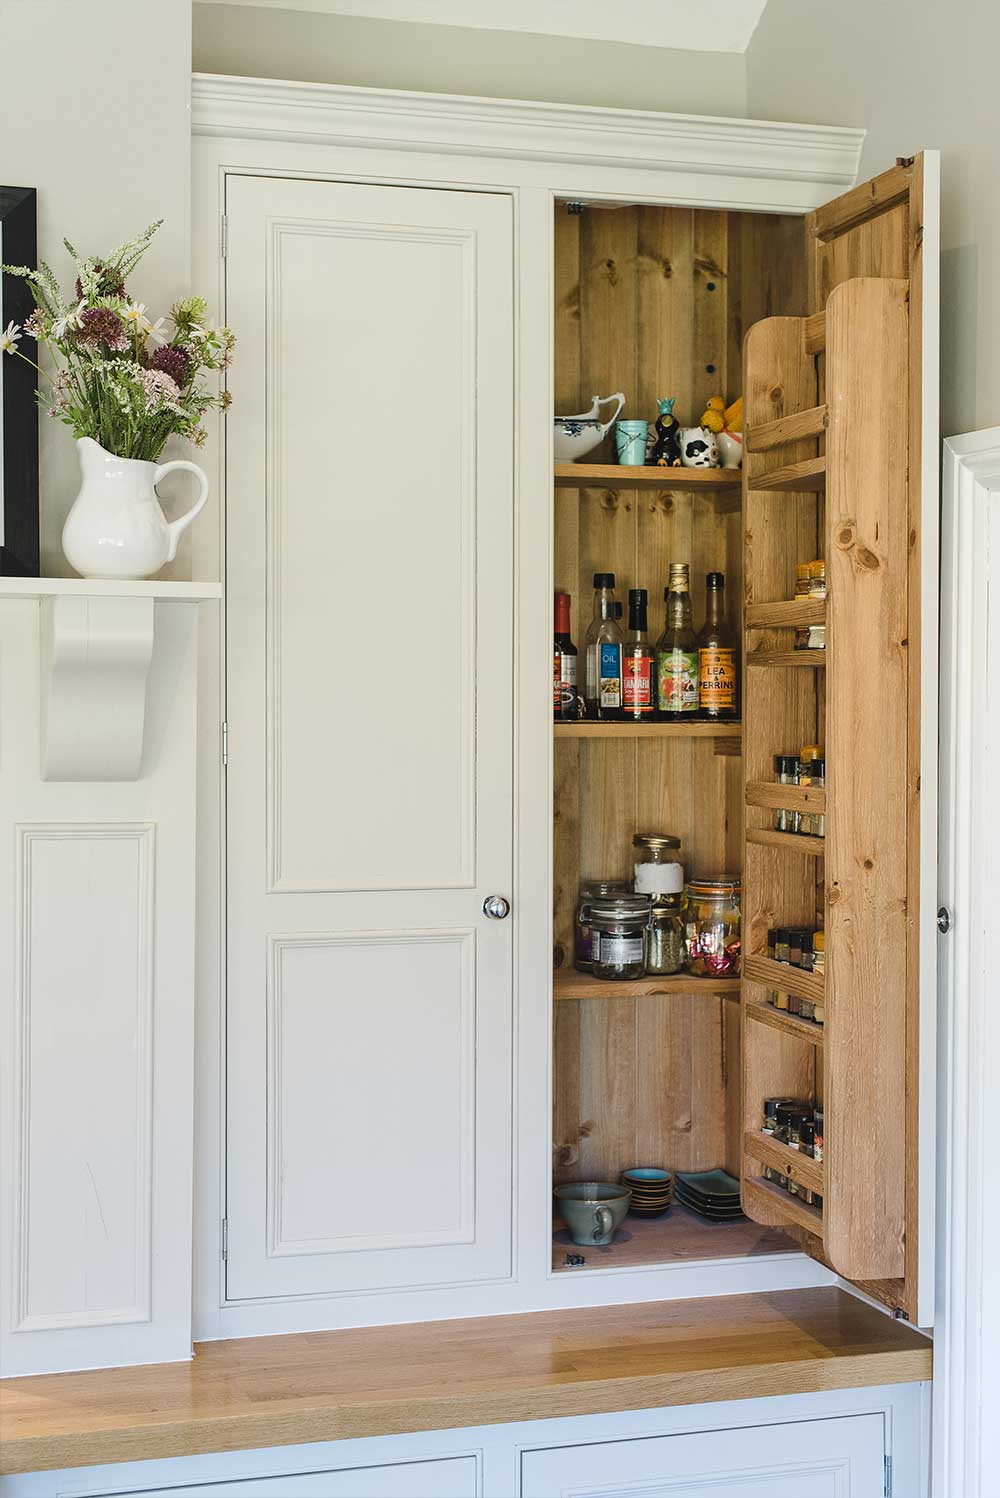 Made To Measure Kitchen Doors Kitchen Units Doors And Cupboards Made With Solid Wood From The